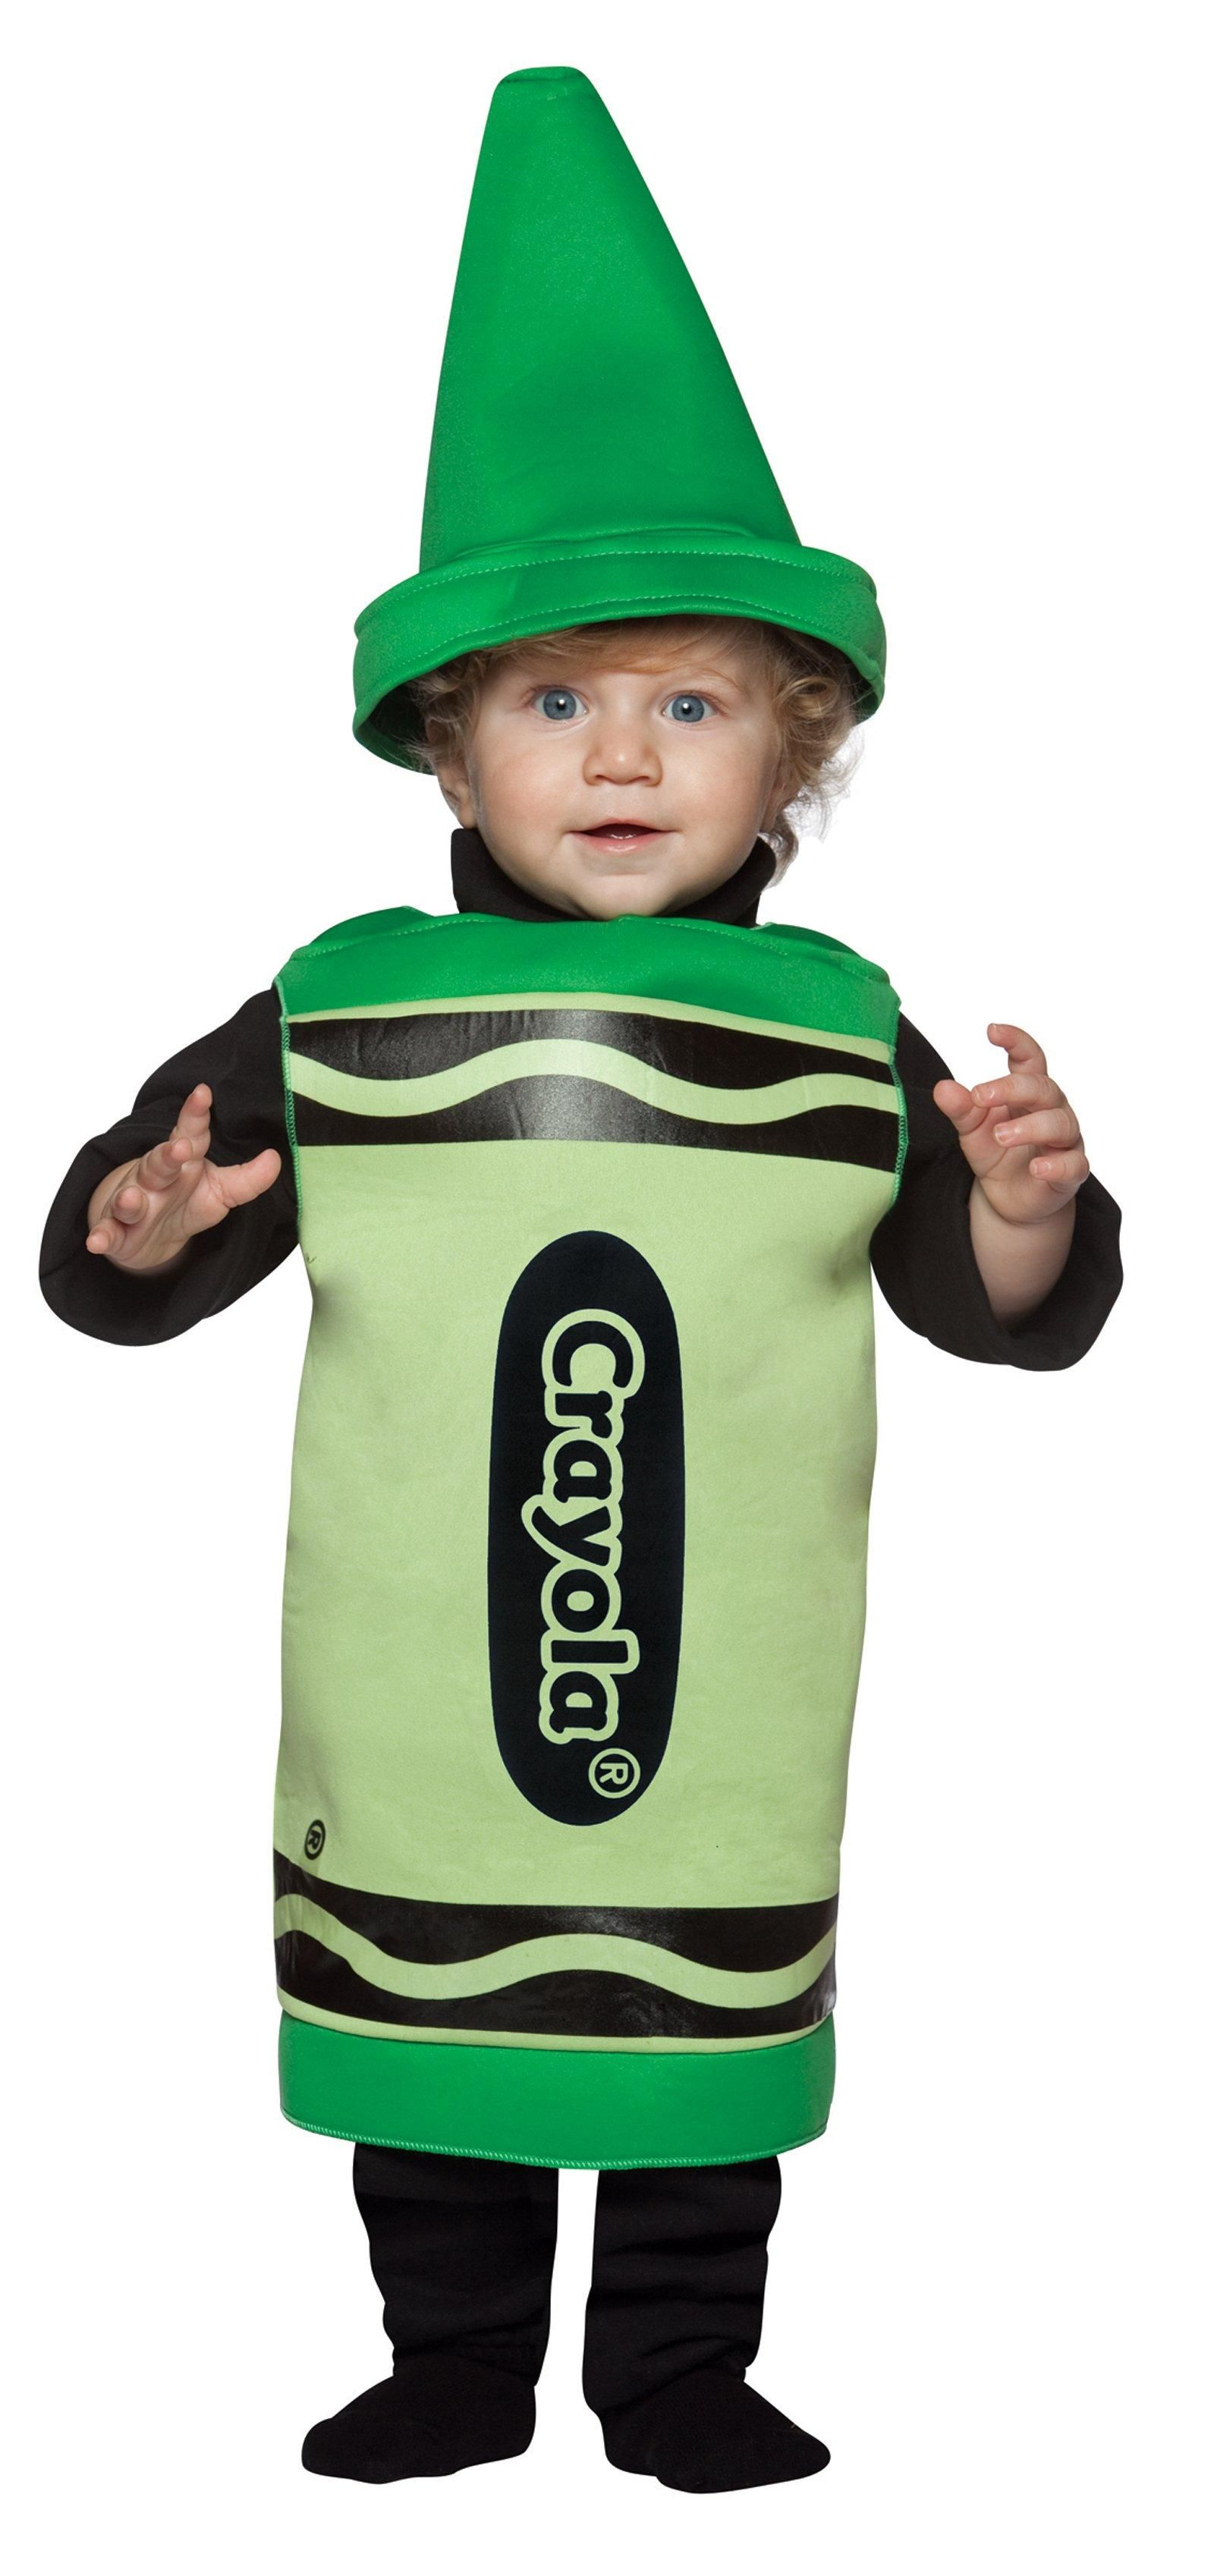 Green Crayola Toddler Costume from CostumeExpress.com